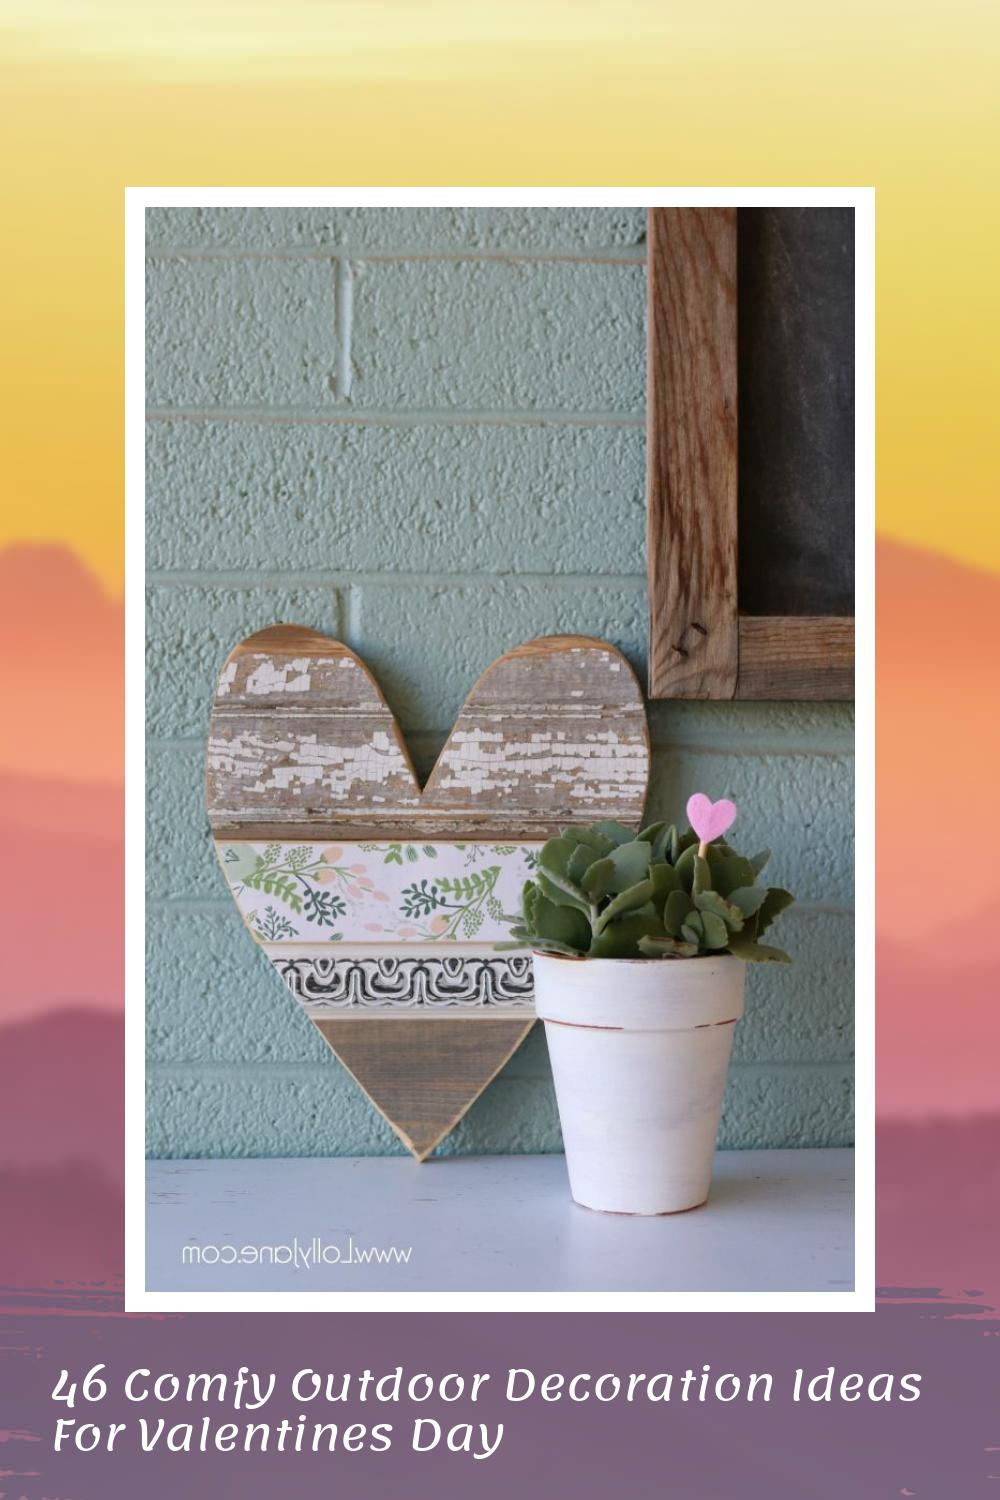 46 Comfy Outdoor Decoration Ideas For Valentines Day 6